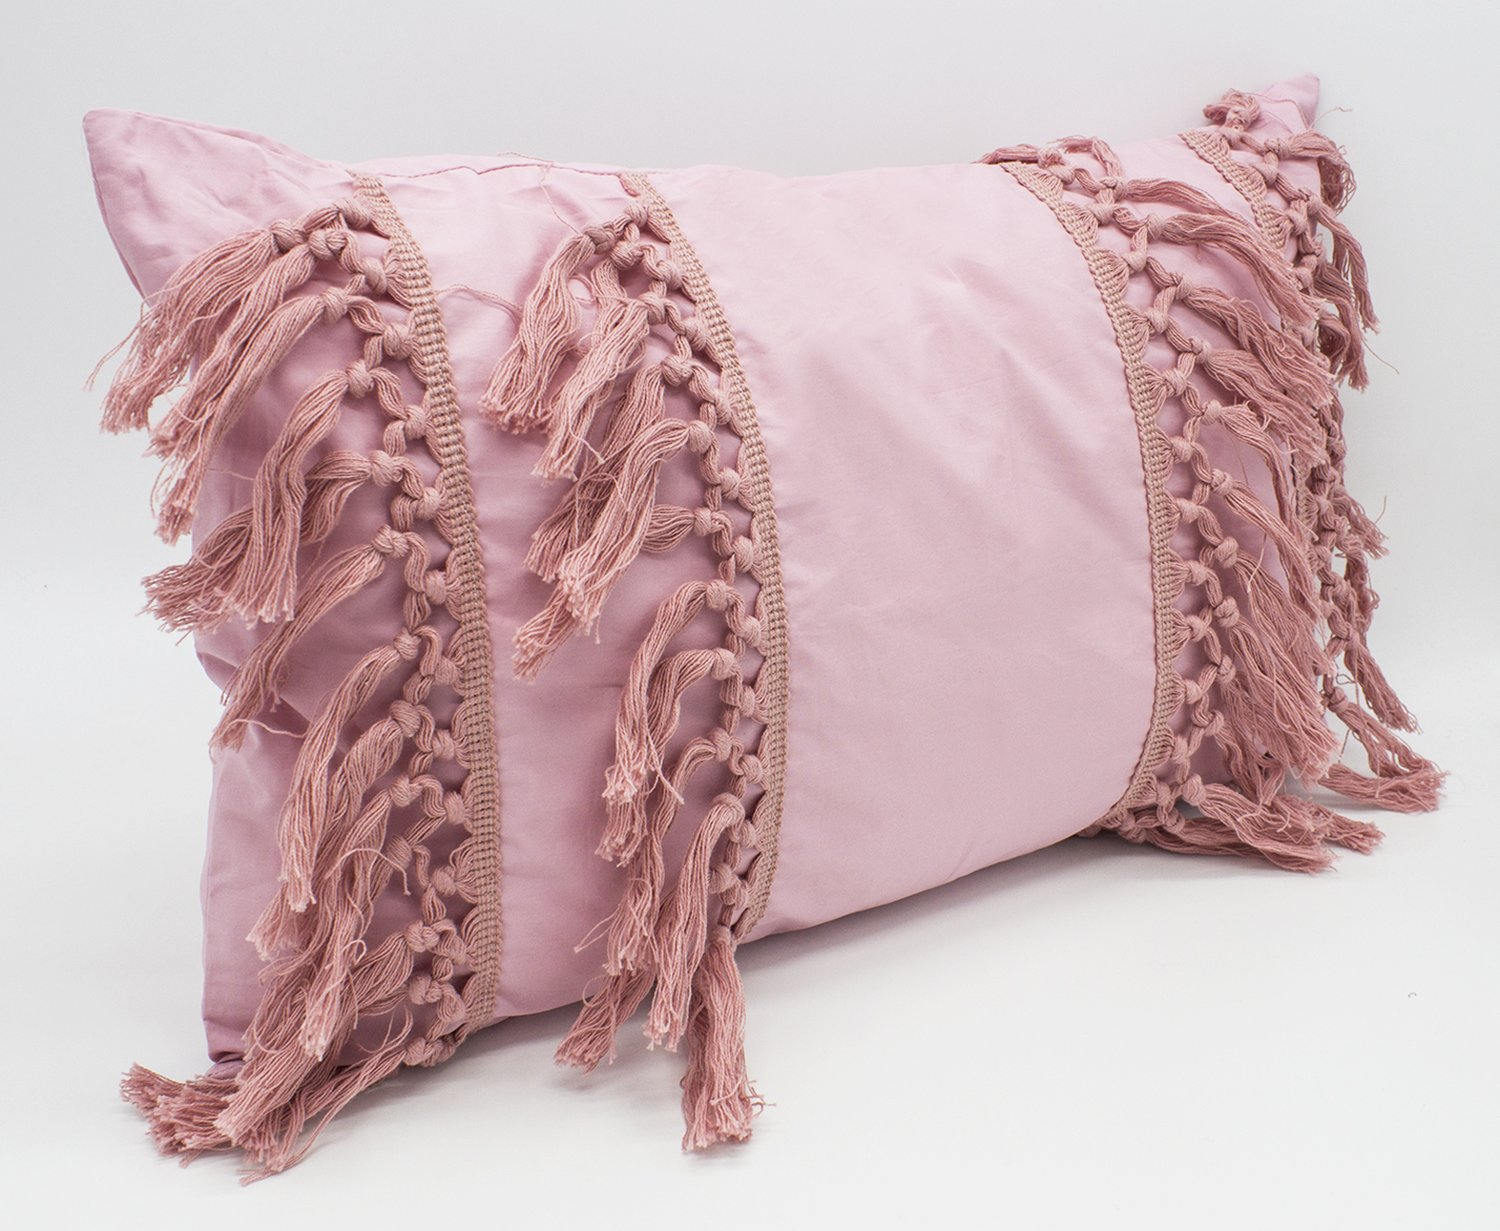 "Fennco Styles Stylish Fringe Tassels Decorative Cotton Throw Pillow (Pink, 12""x20"" Case Only) - Add a stylish and modern look to your living space with this Stripe Print Tassel Fringe Throw Pillow from Fennco Styles The horizontal tassels are sure to liven up your home settings and gives your decor a playful appeal. Mix and match this pillow with your sofa, chair and day bed for some much-needed comfort and a style. The durable cotton and easy to maintain machine wash makes cleaning this pillow a breeze. Size: 18"" W x 18"" L, 12"" W x 20"" L - living-room-soft-furnishings, living-room, decorative-pillows - 810FIgmlvtL -"